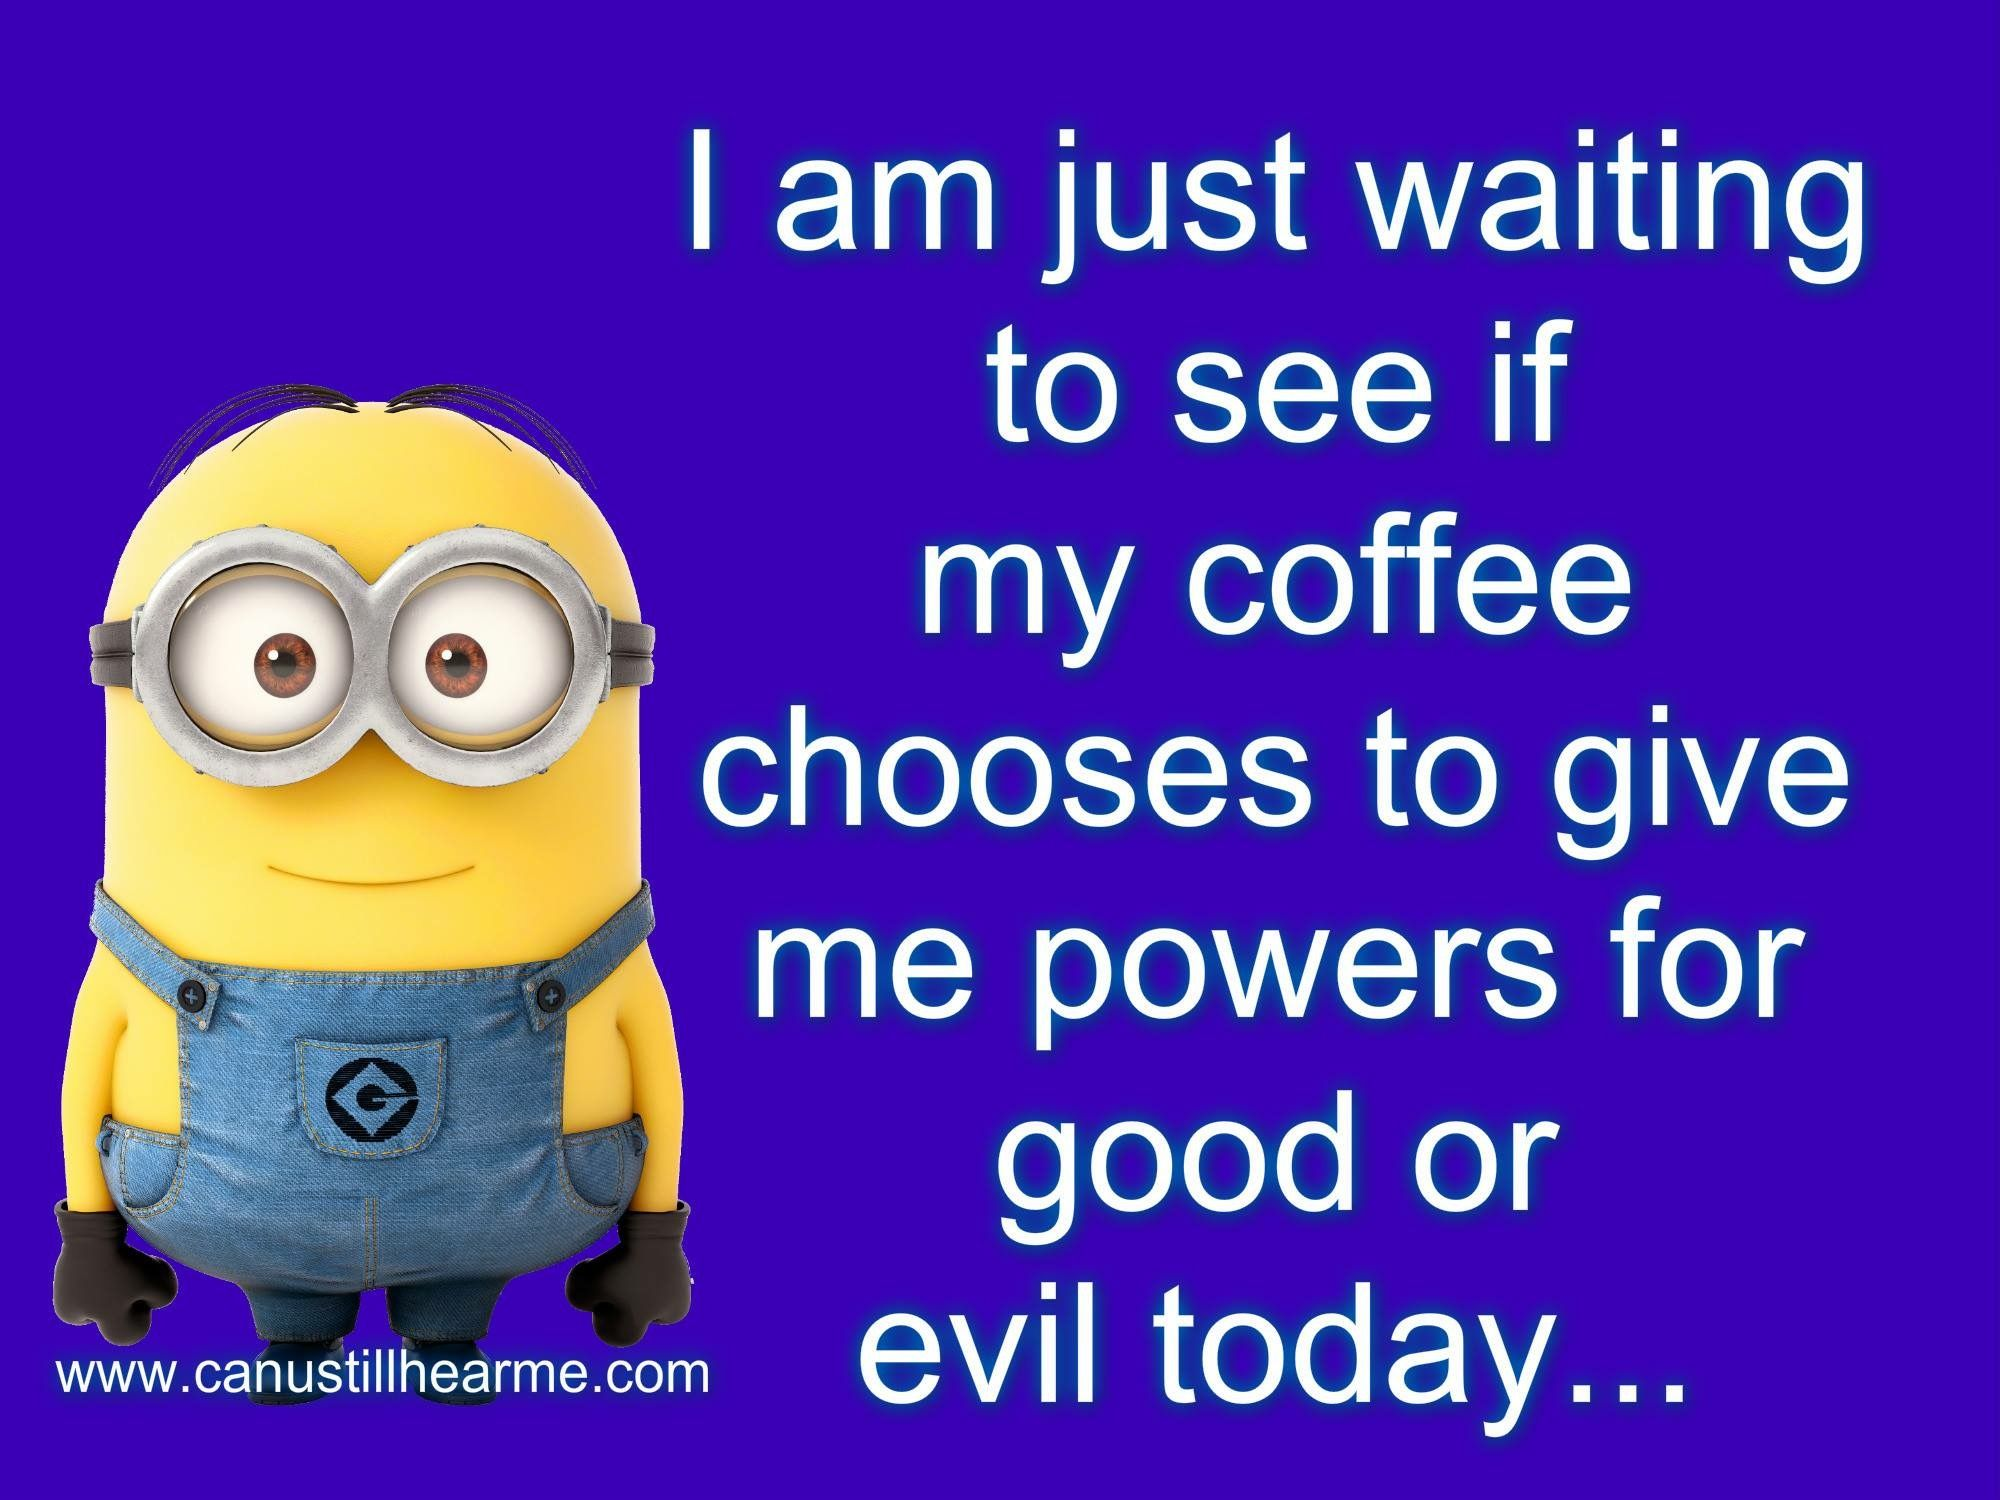 Newyorkgourmetcoffee Com Coffee Decaf Caffeine Newyork Shoplocal Special Drink Warm Iced Gou Fun Quotes Funny Funny Minion Quotes Super Funny Quotes